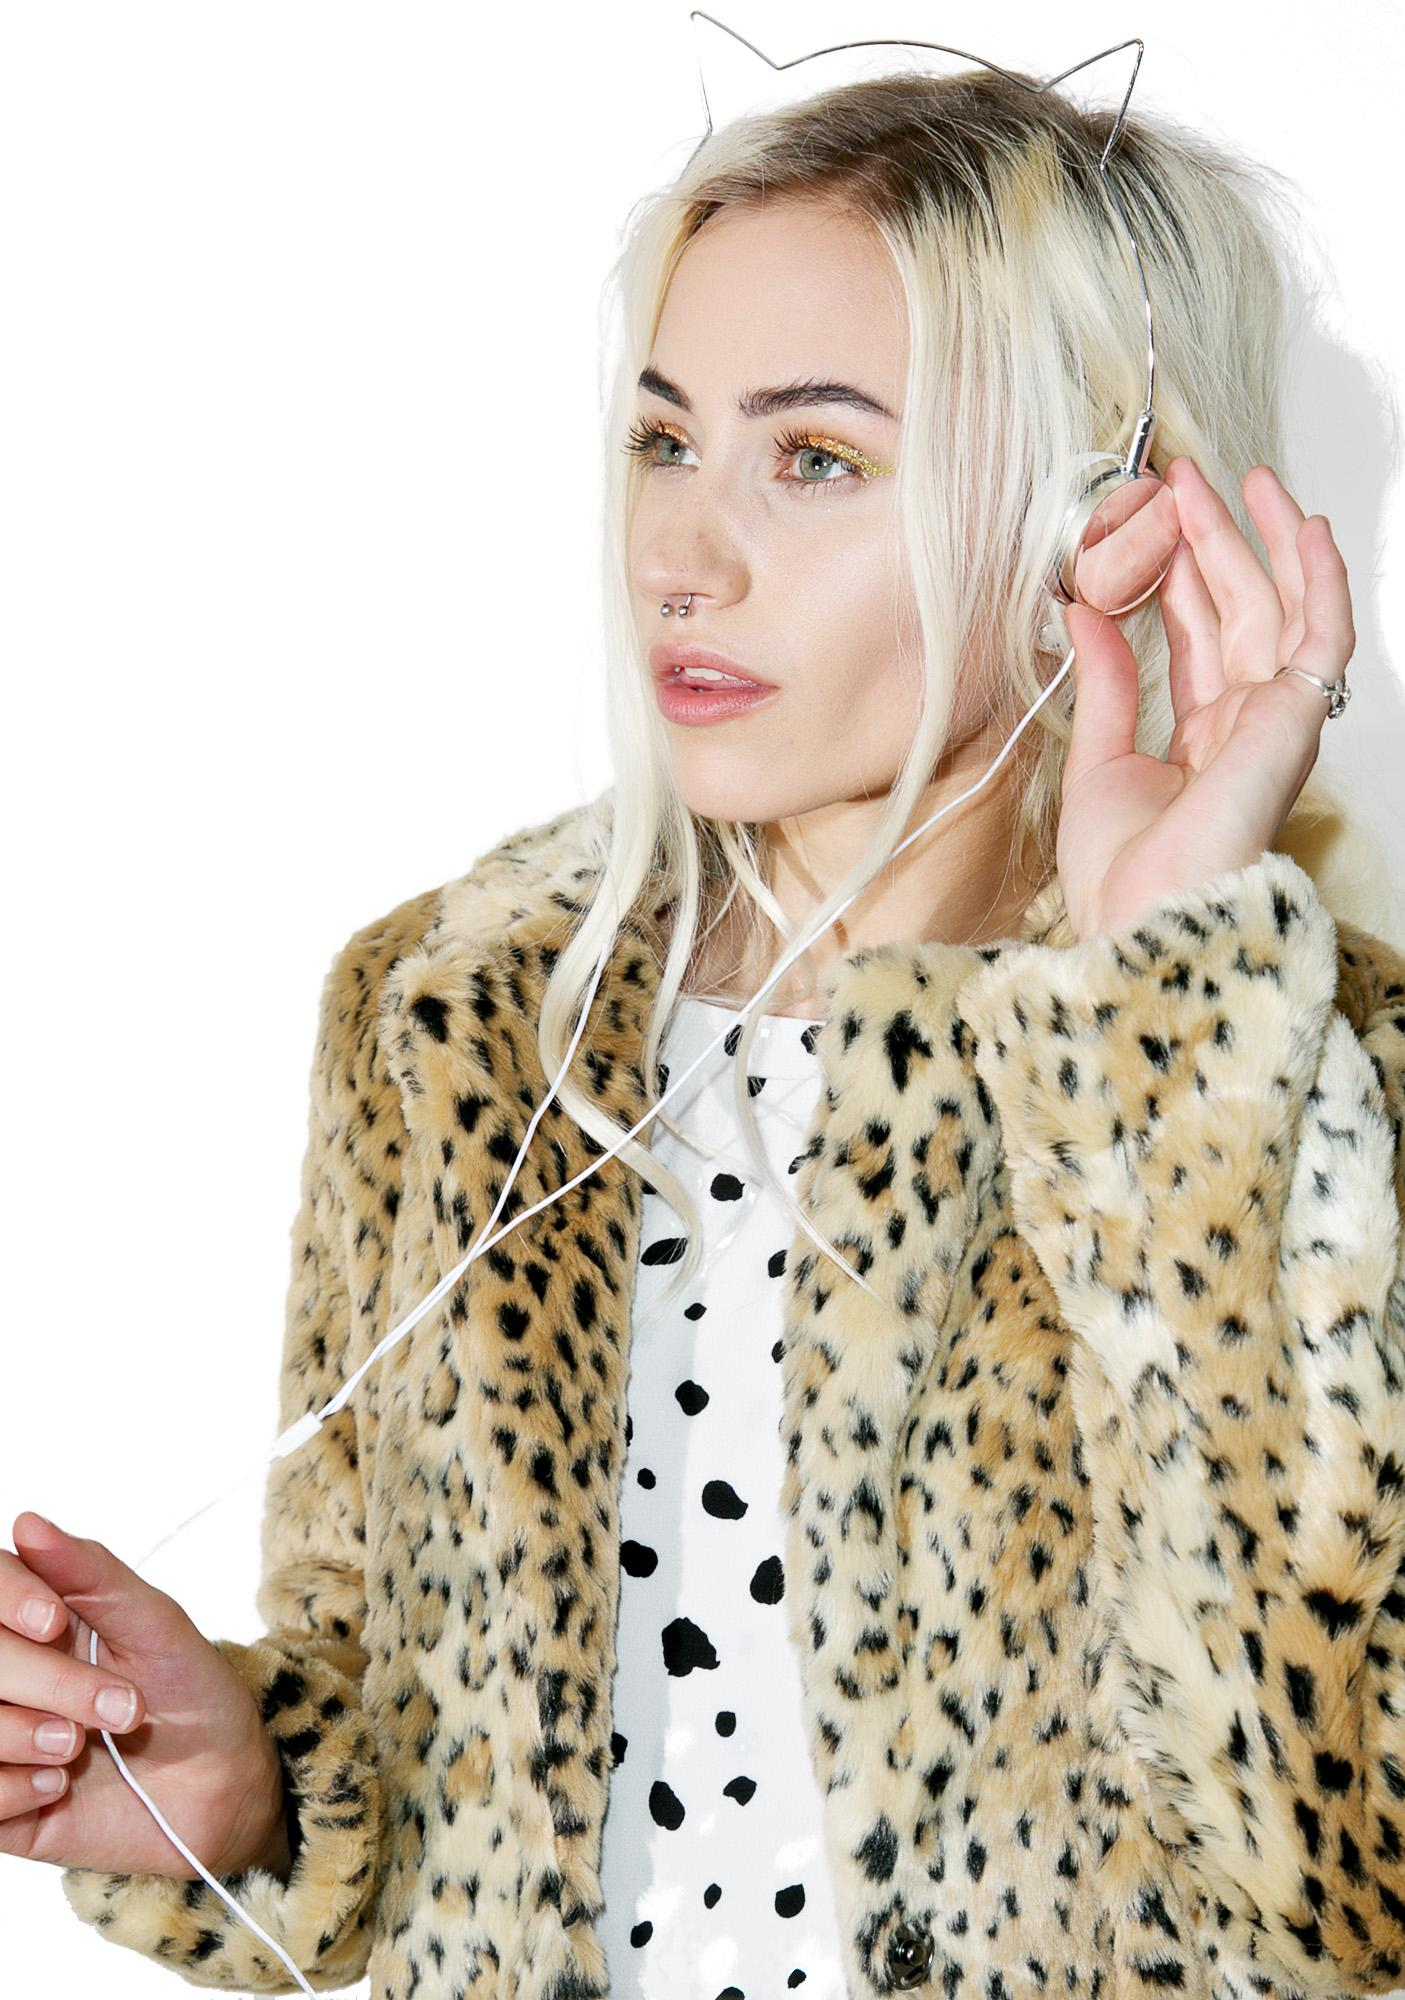 Skinnydip X Zara Martin Kitty Headphones